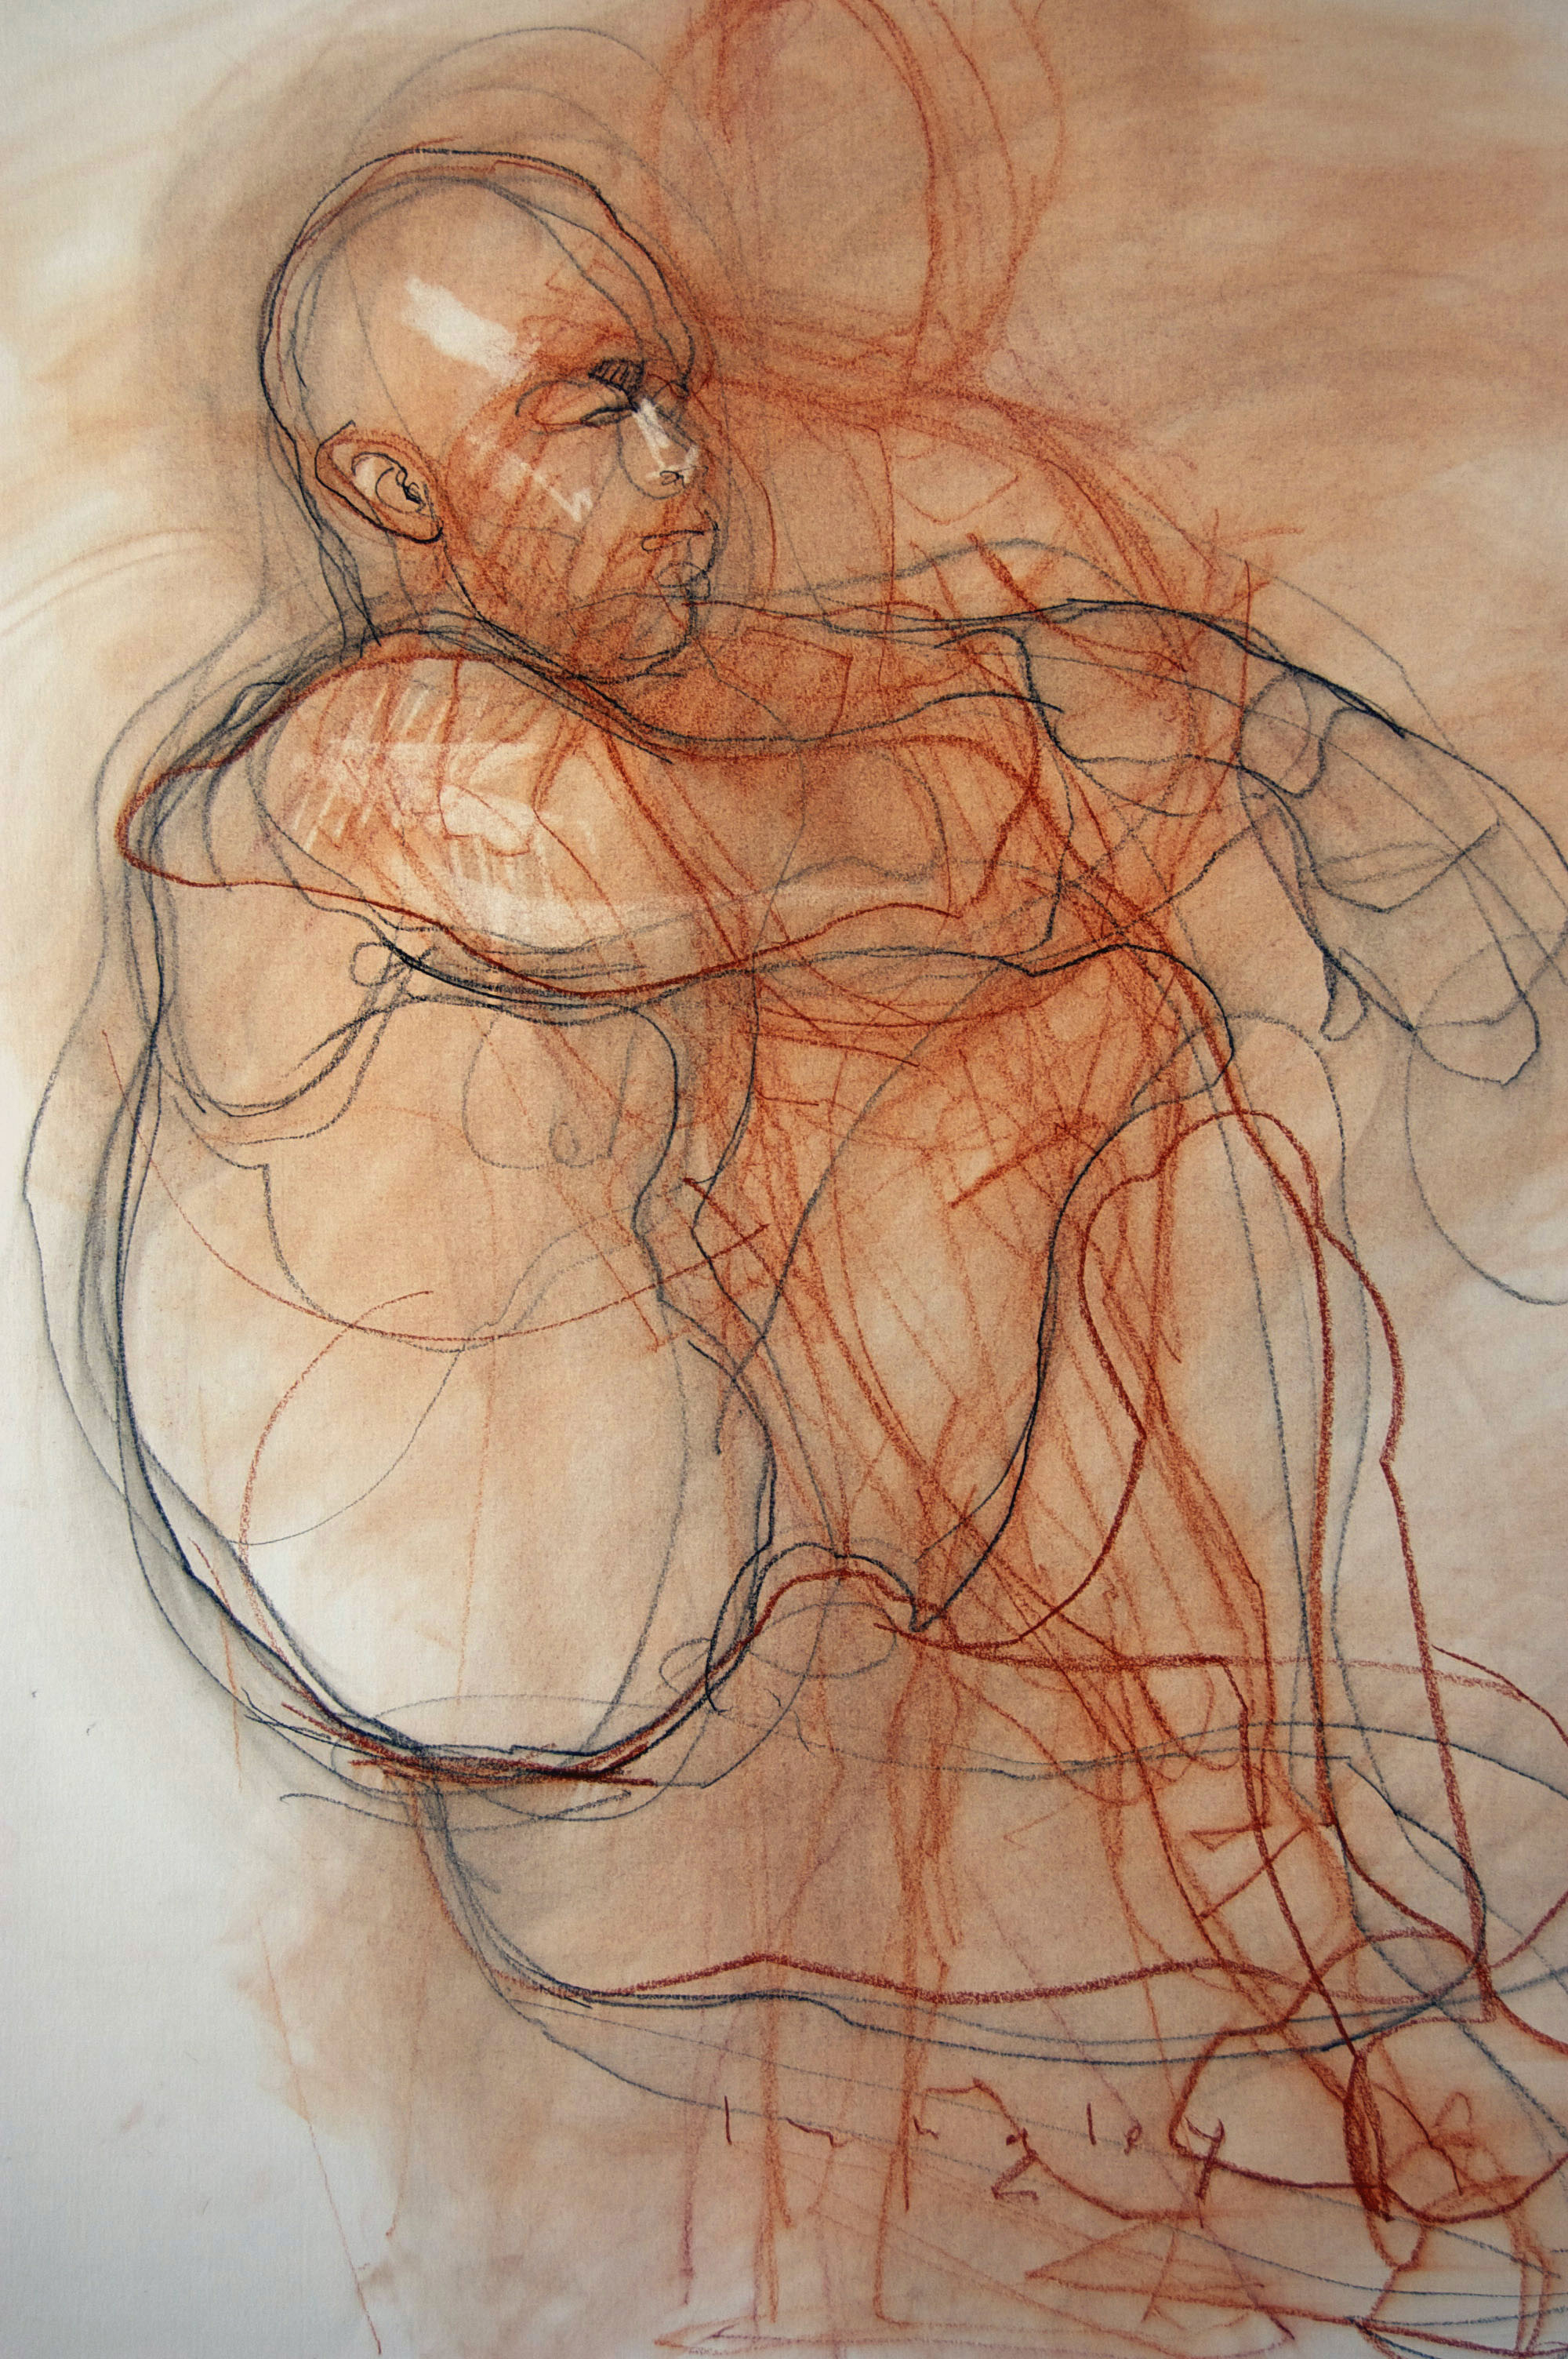 Seated male nude with elbow and knee locked / linear variation in red and black chalk, 18x24, 2010, Collectionof the artist.